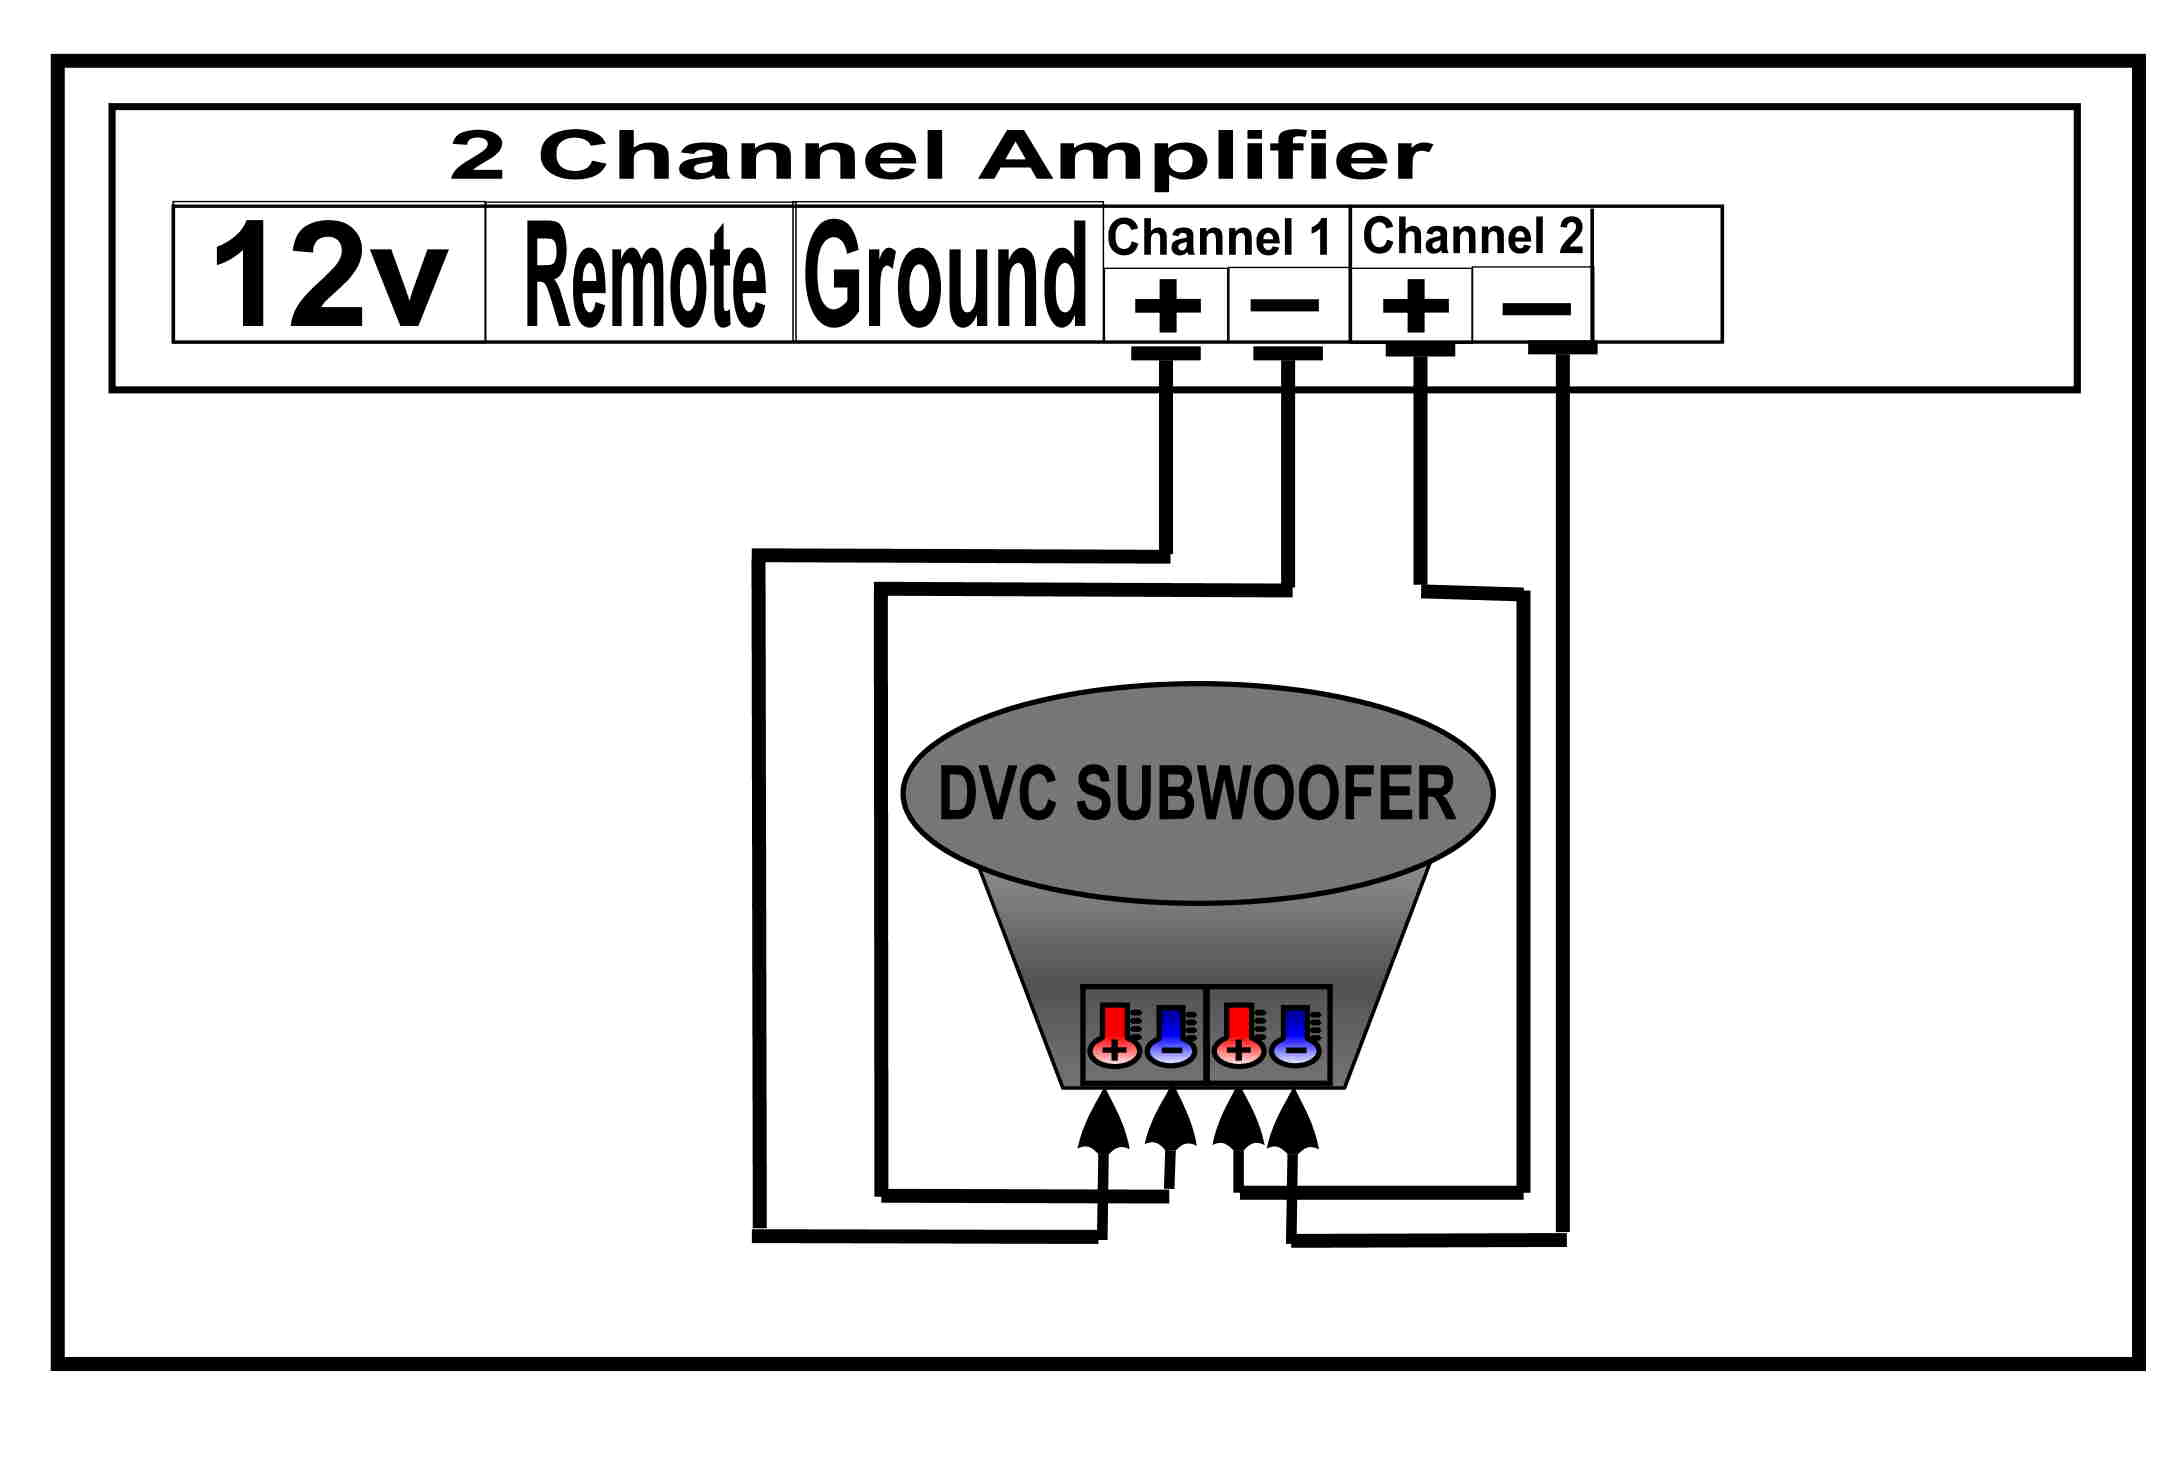 2 channel and 4 speakers ford 0 belt diagram help with wiring my audiobahn aw 1200 q spl 460